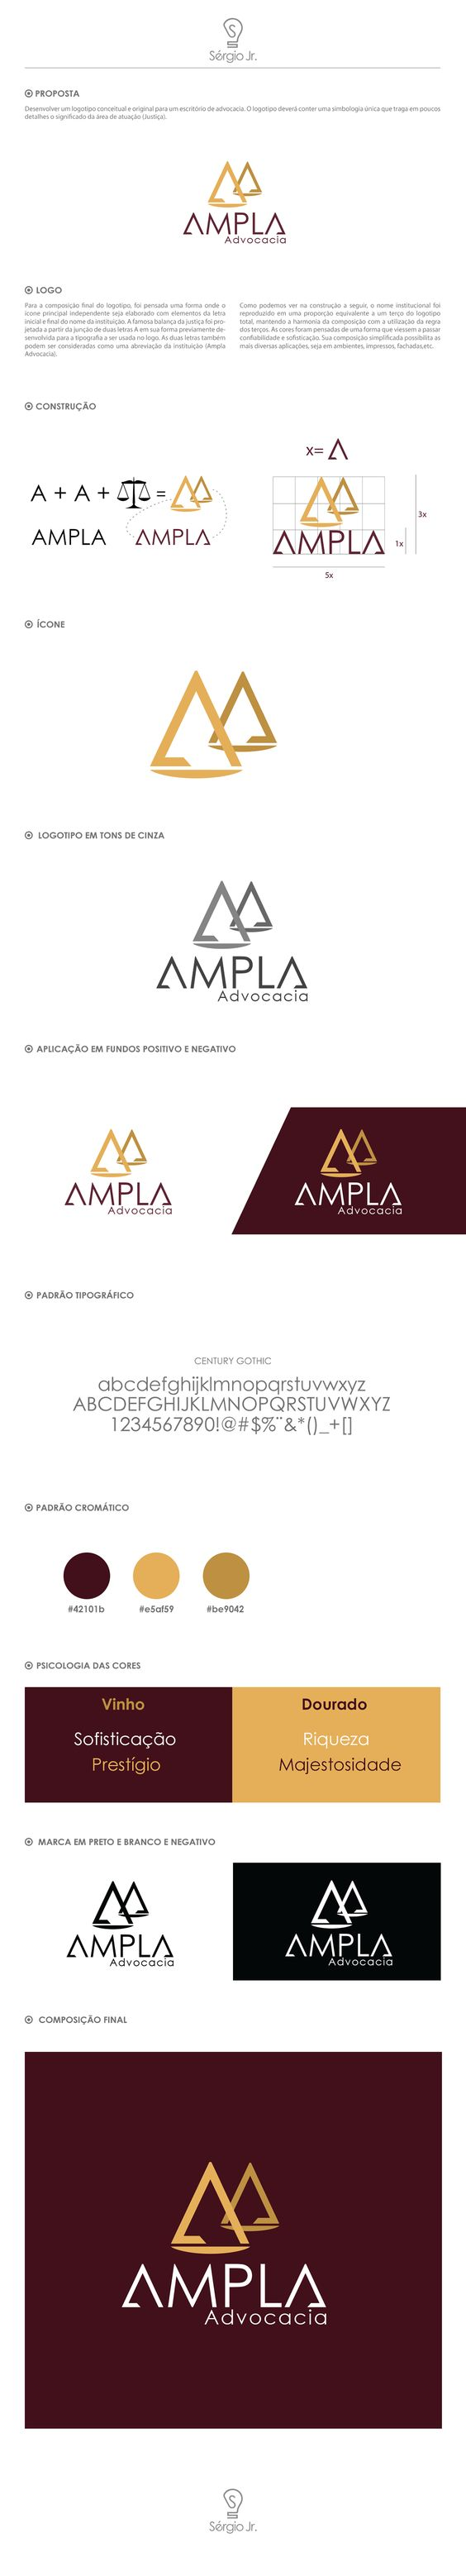 Logotipo Ampla Advocacia on Behance